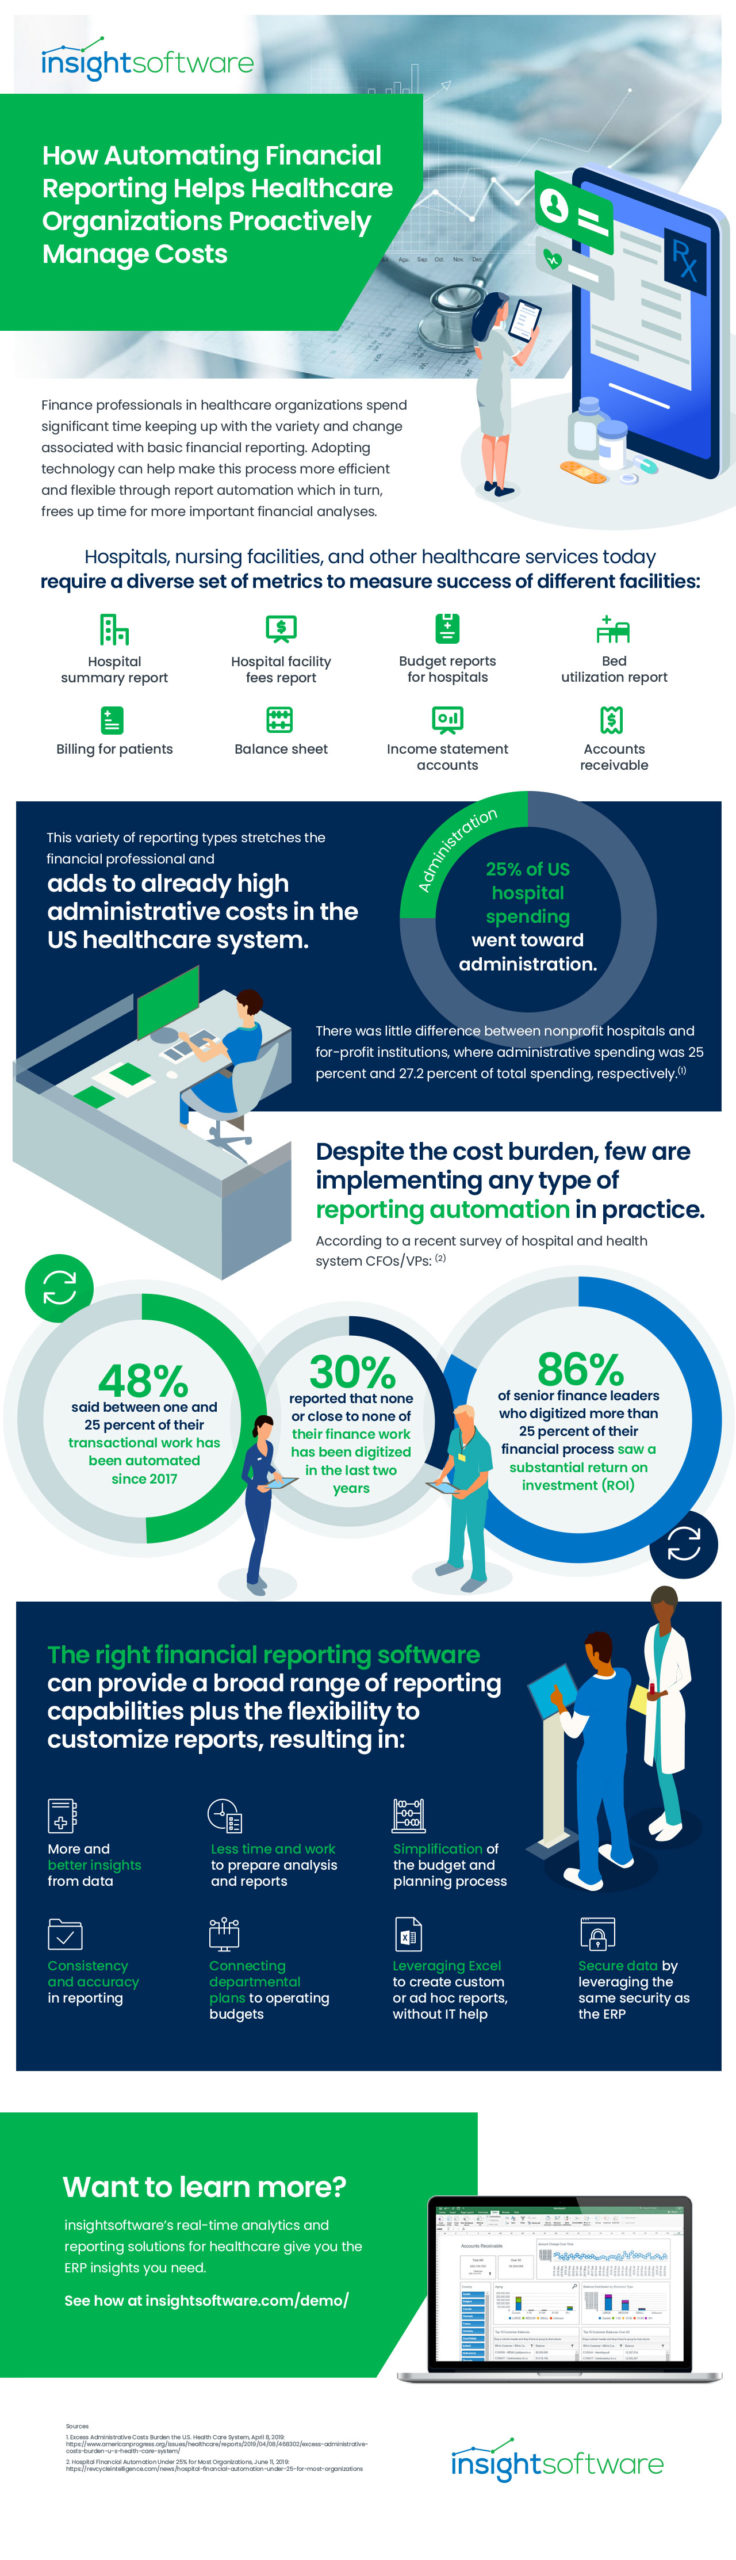 insightsoftware Healthcare Infographic